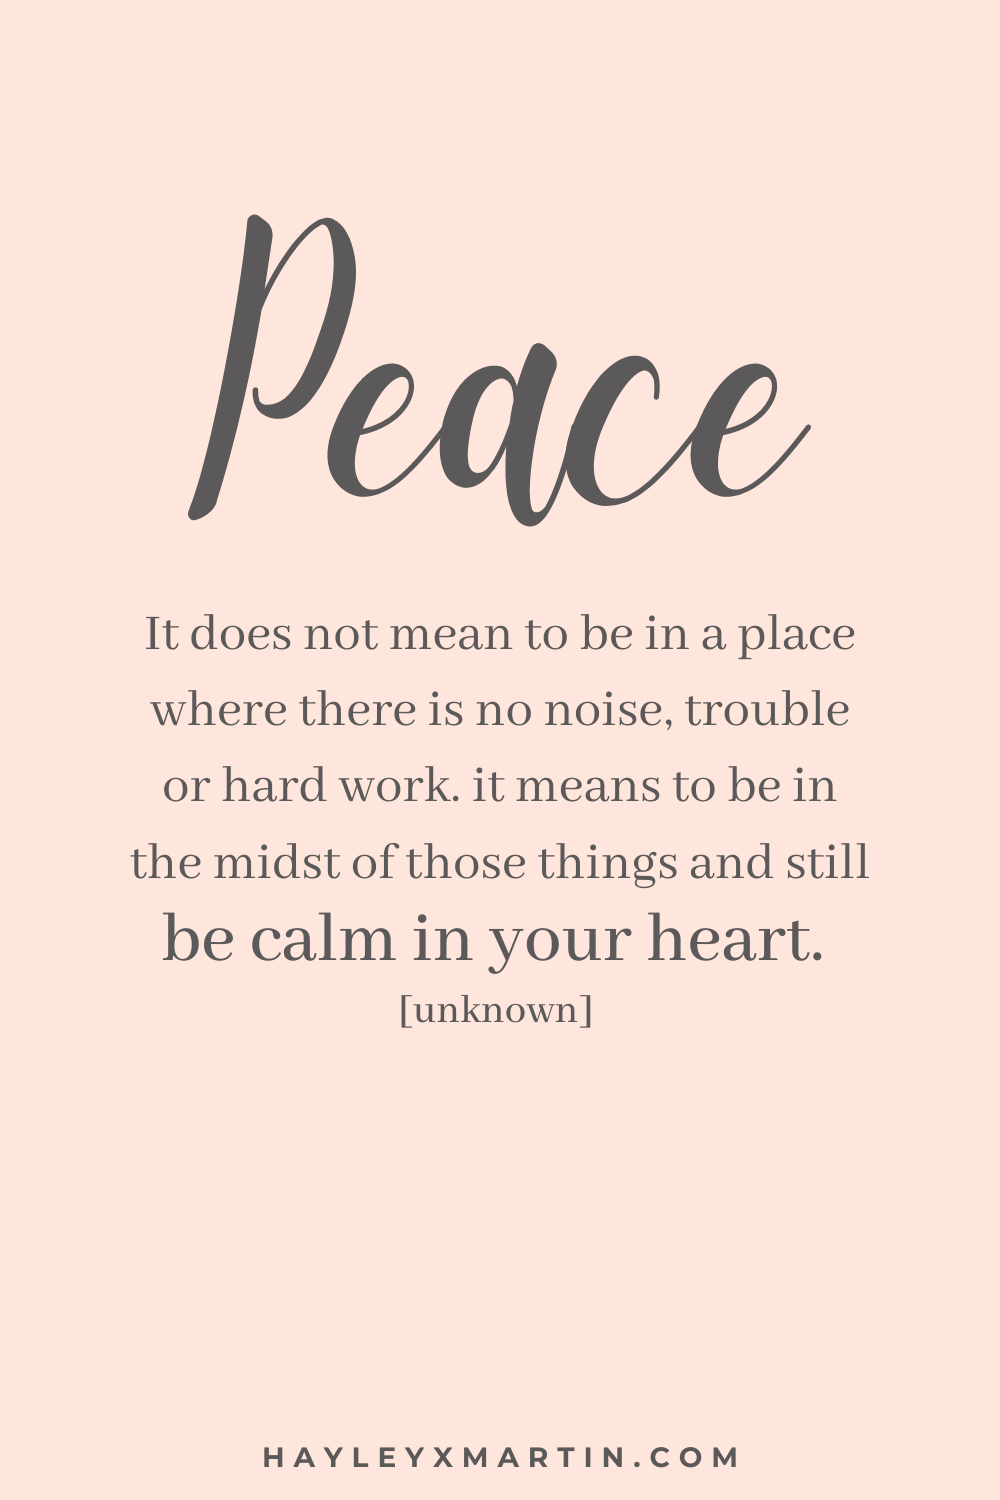 PEACE | IT DOES NOT MEAN TO BE IN A PLACE WHERE THERE IS NO NOISE, TROUBLE OR HARD WORK. IT MEANS TO BE IN THE MIDST OF THOSE THINGS AND STILL BE CALM IN YOUR HEART